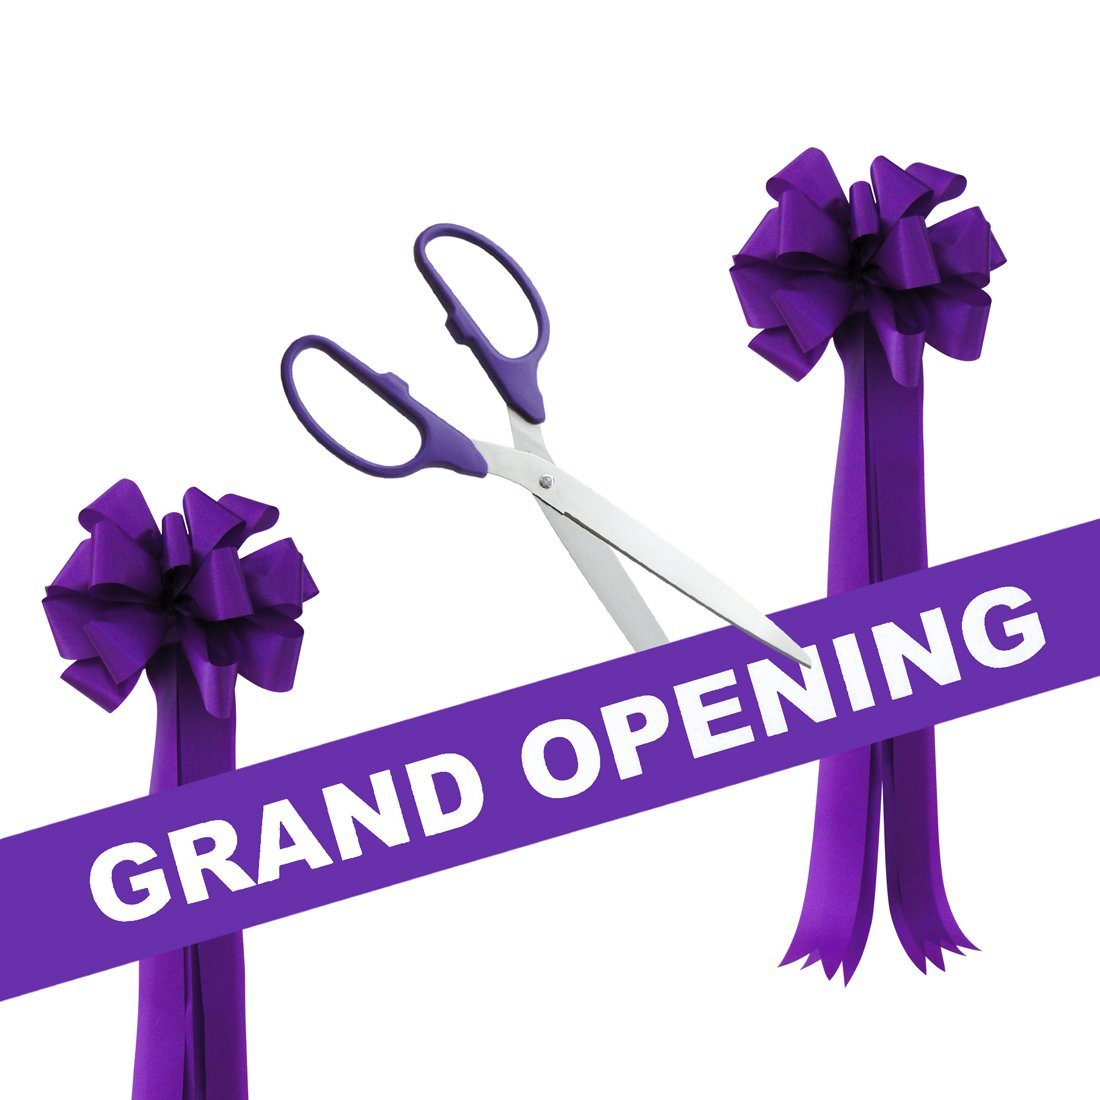 Grand Opening Kit - 25'' Purple/Silver Ceremonial Ribbon Cutting Scissors with 5 Yards of 6'' Purple Grand Opening Ribbon and 2 Purple Bows